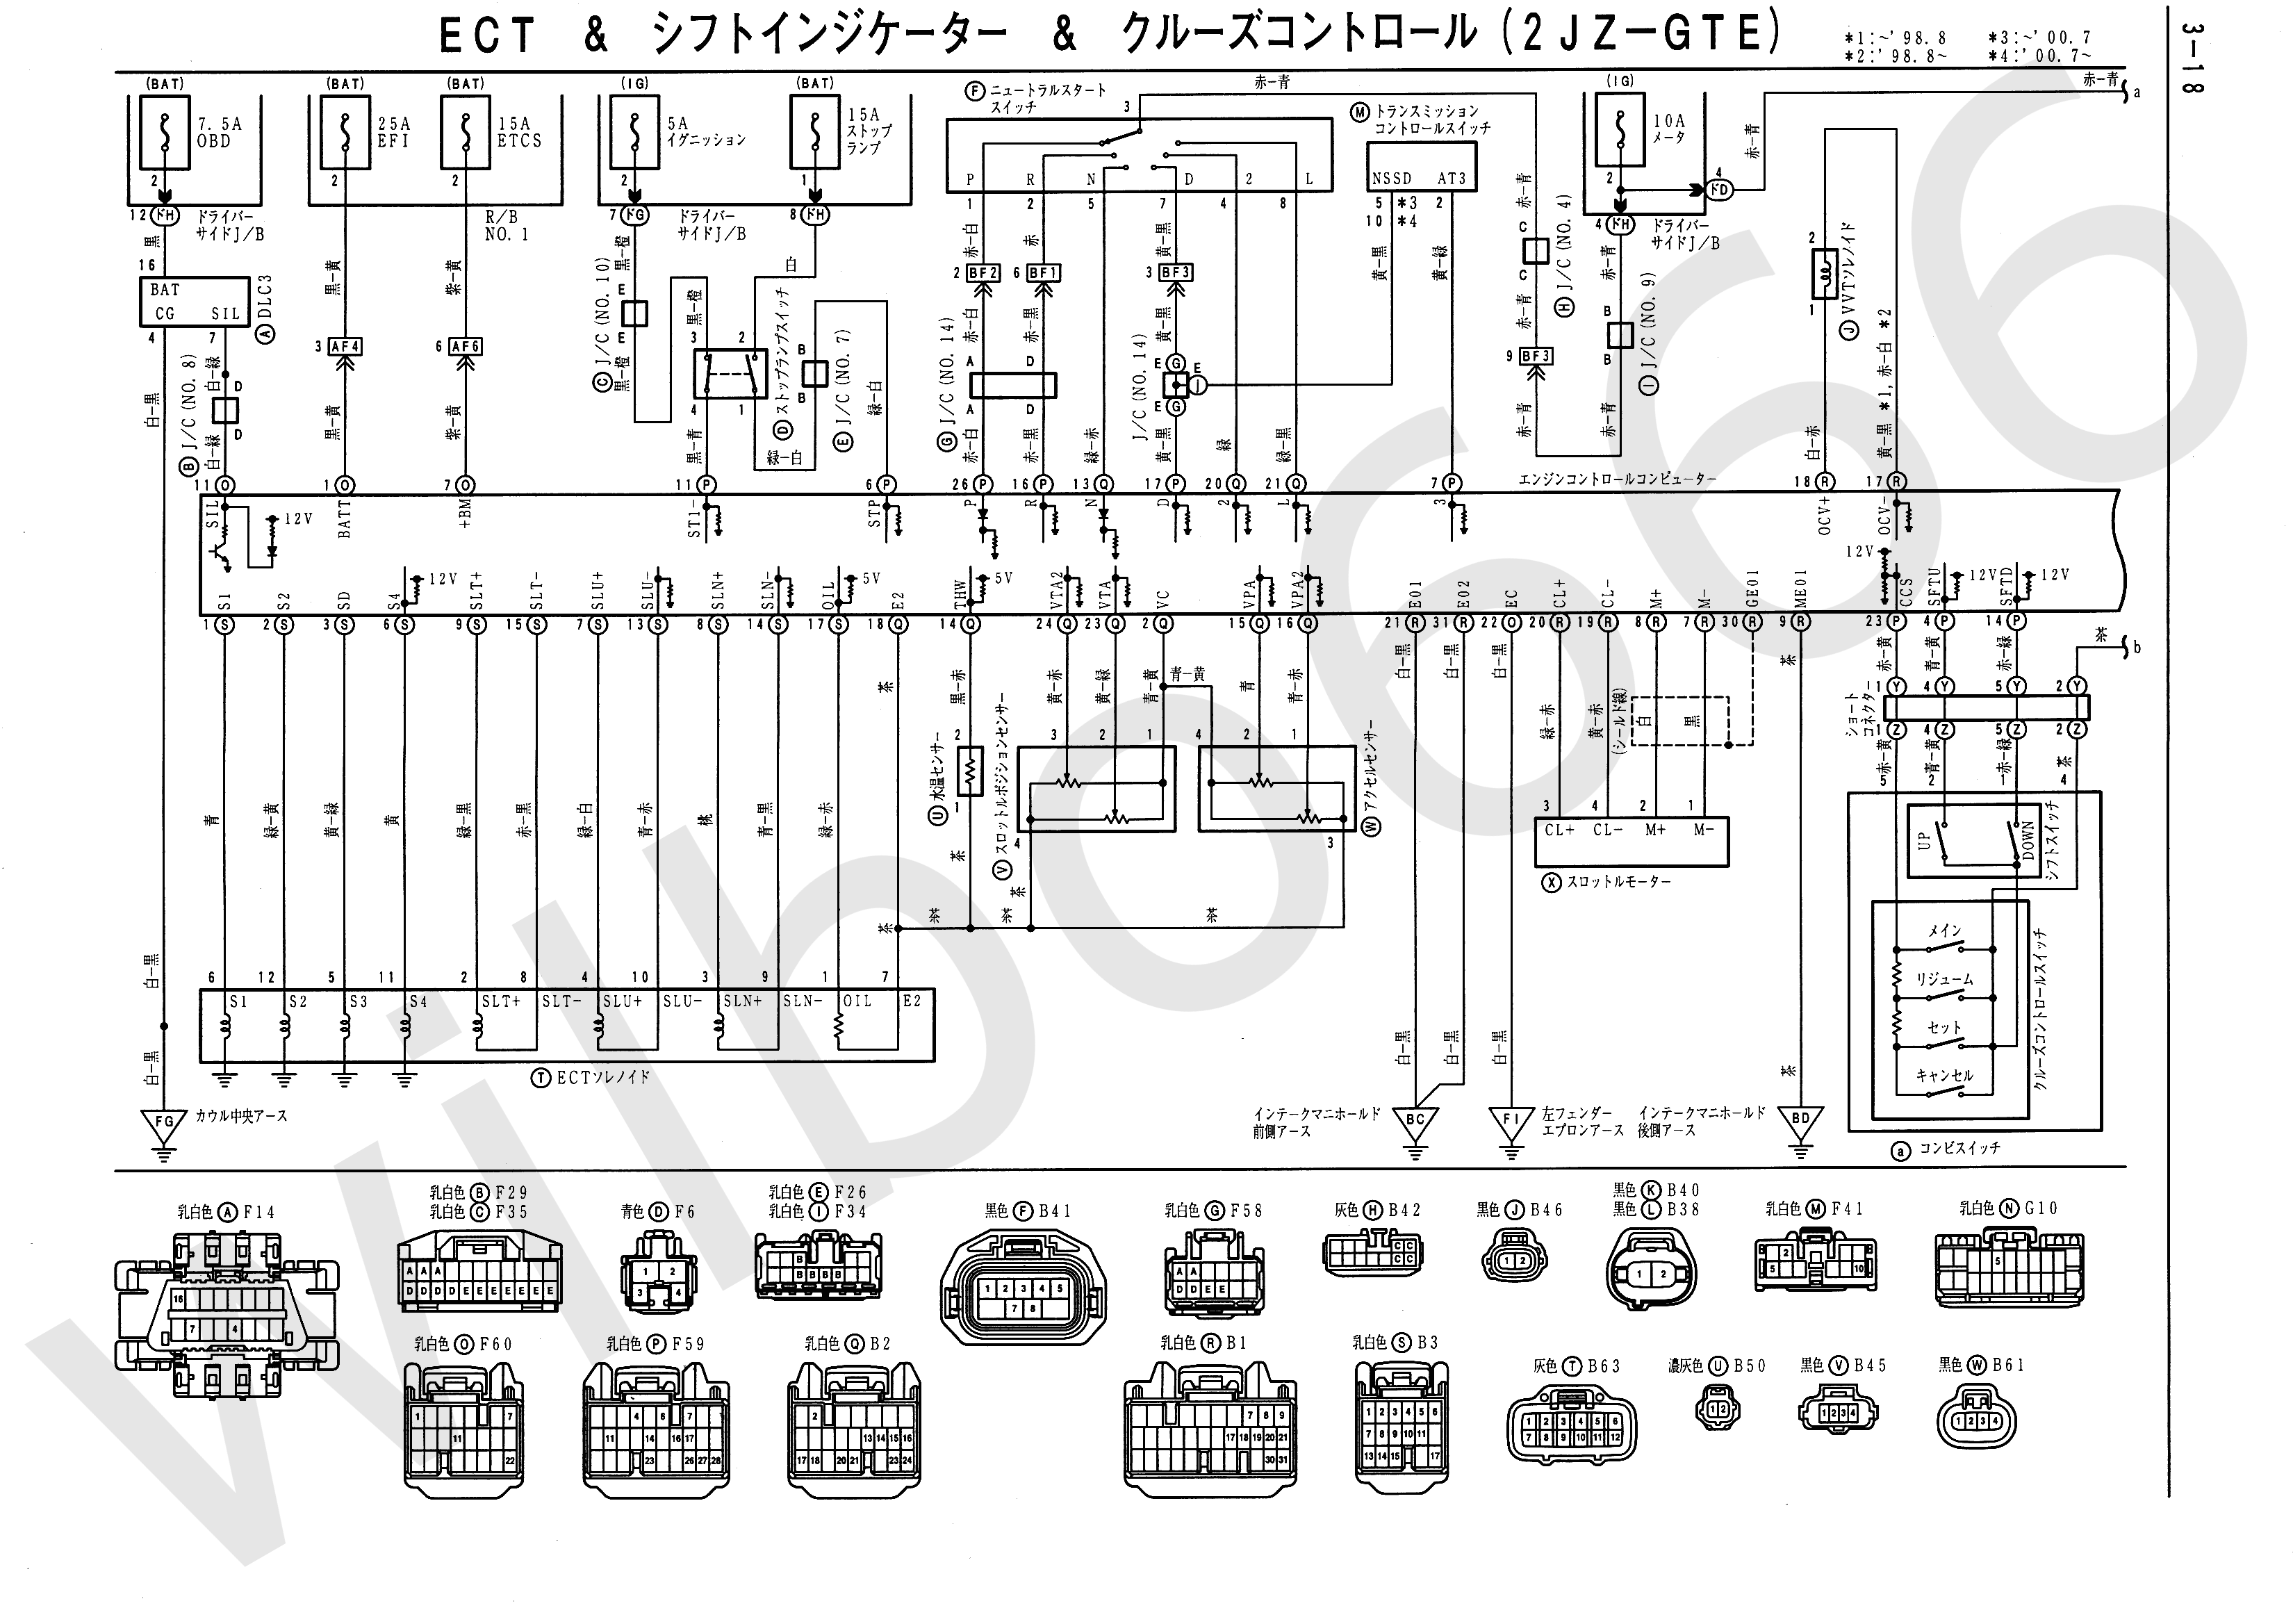 2jz wiring diagram for sony xplod car stereo www.supra-club.ru > Распиновка aristo jzs161